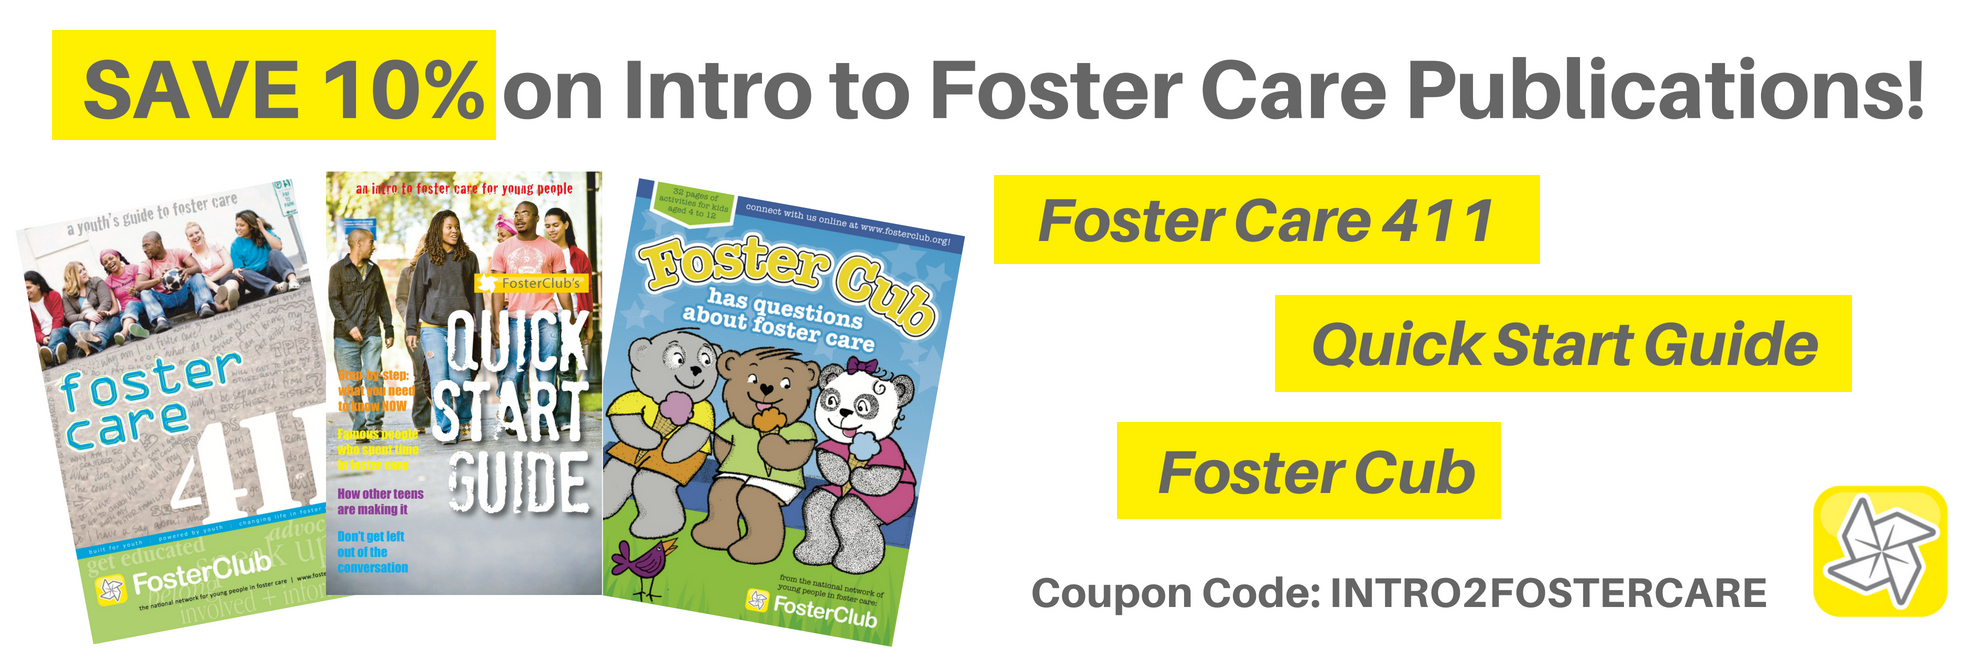 10-off-intro-to-foster-care-banner-for-booth-.jpg